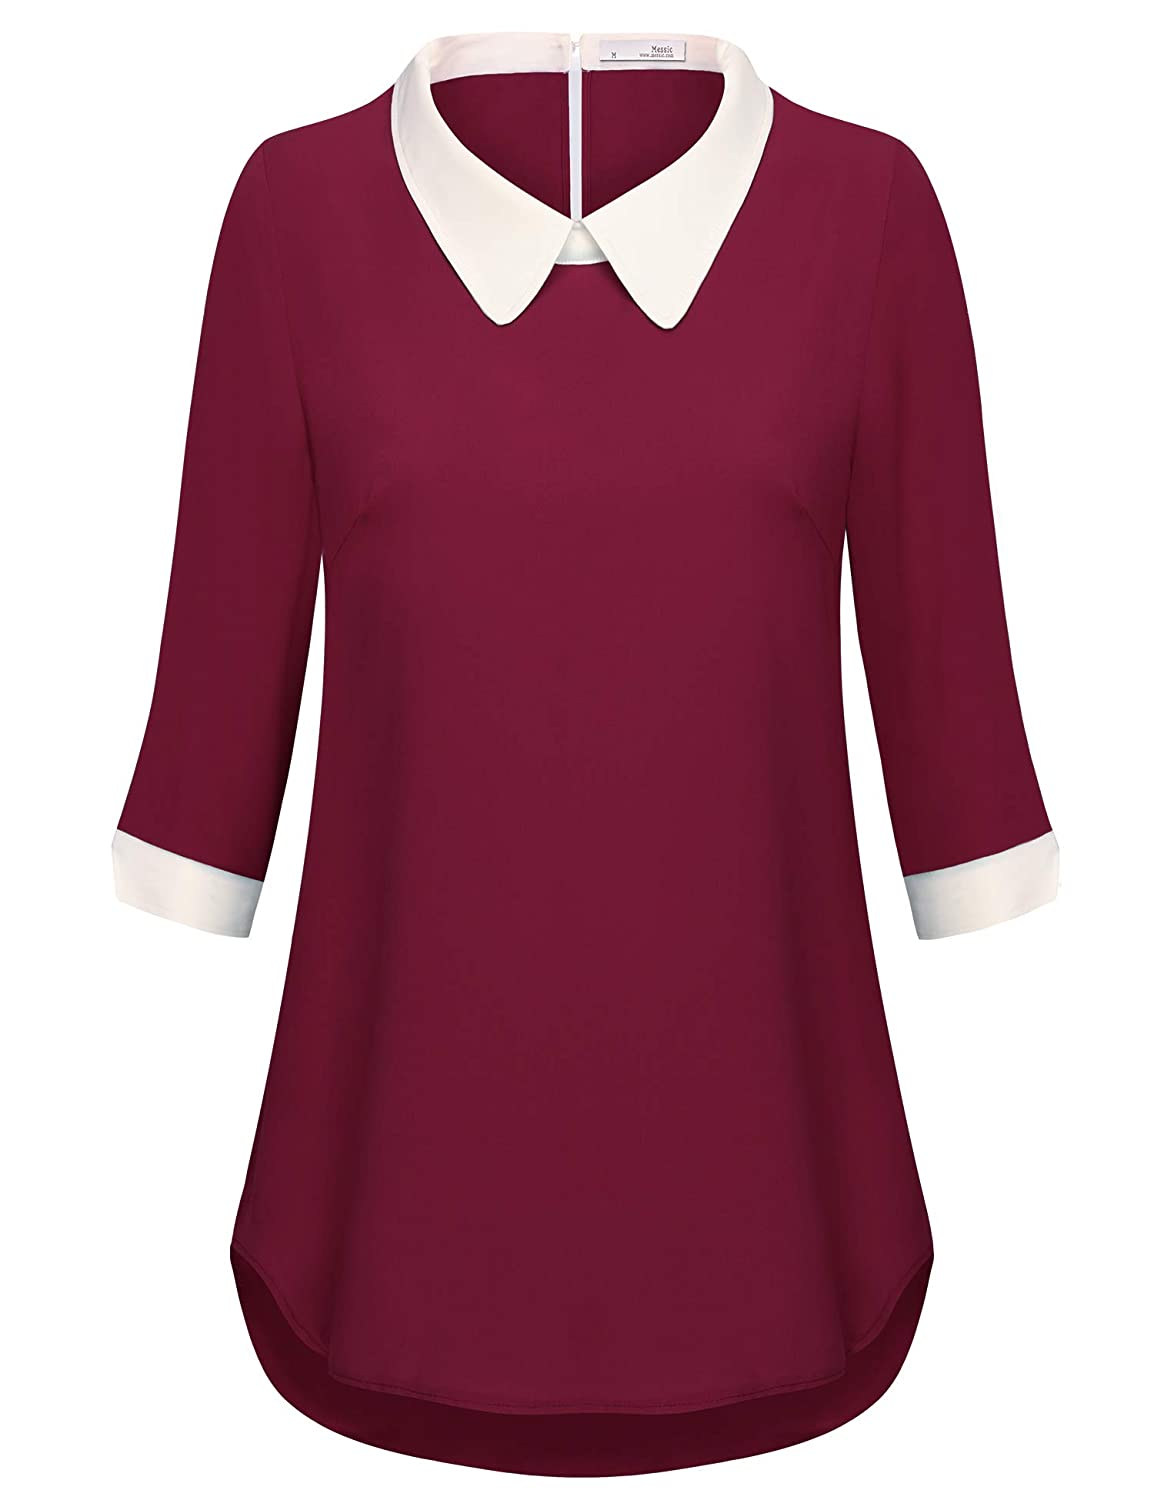 Wine Messic Direct Womens Vintage Tunic Shirts 3 4 Cuffed Sleeve V Neck Pleated Polka Dot Blouse Tops